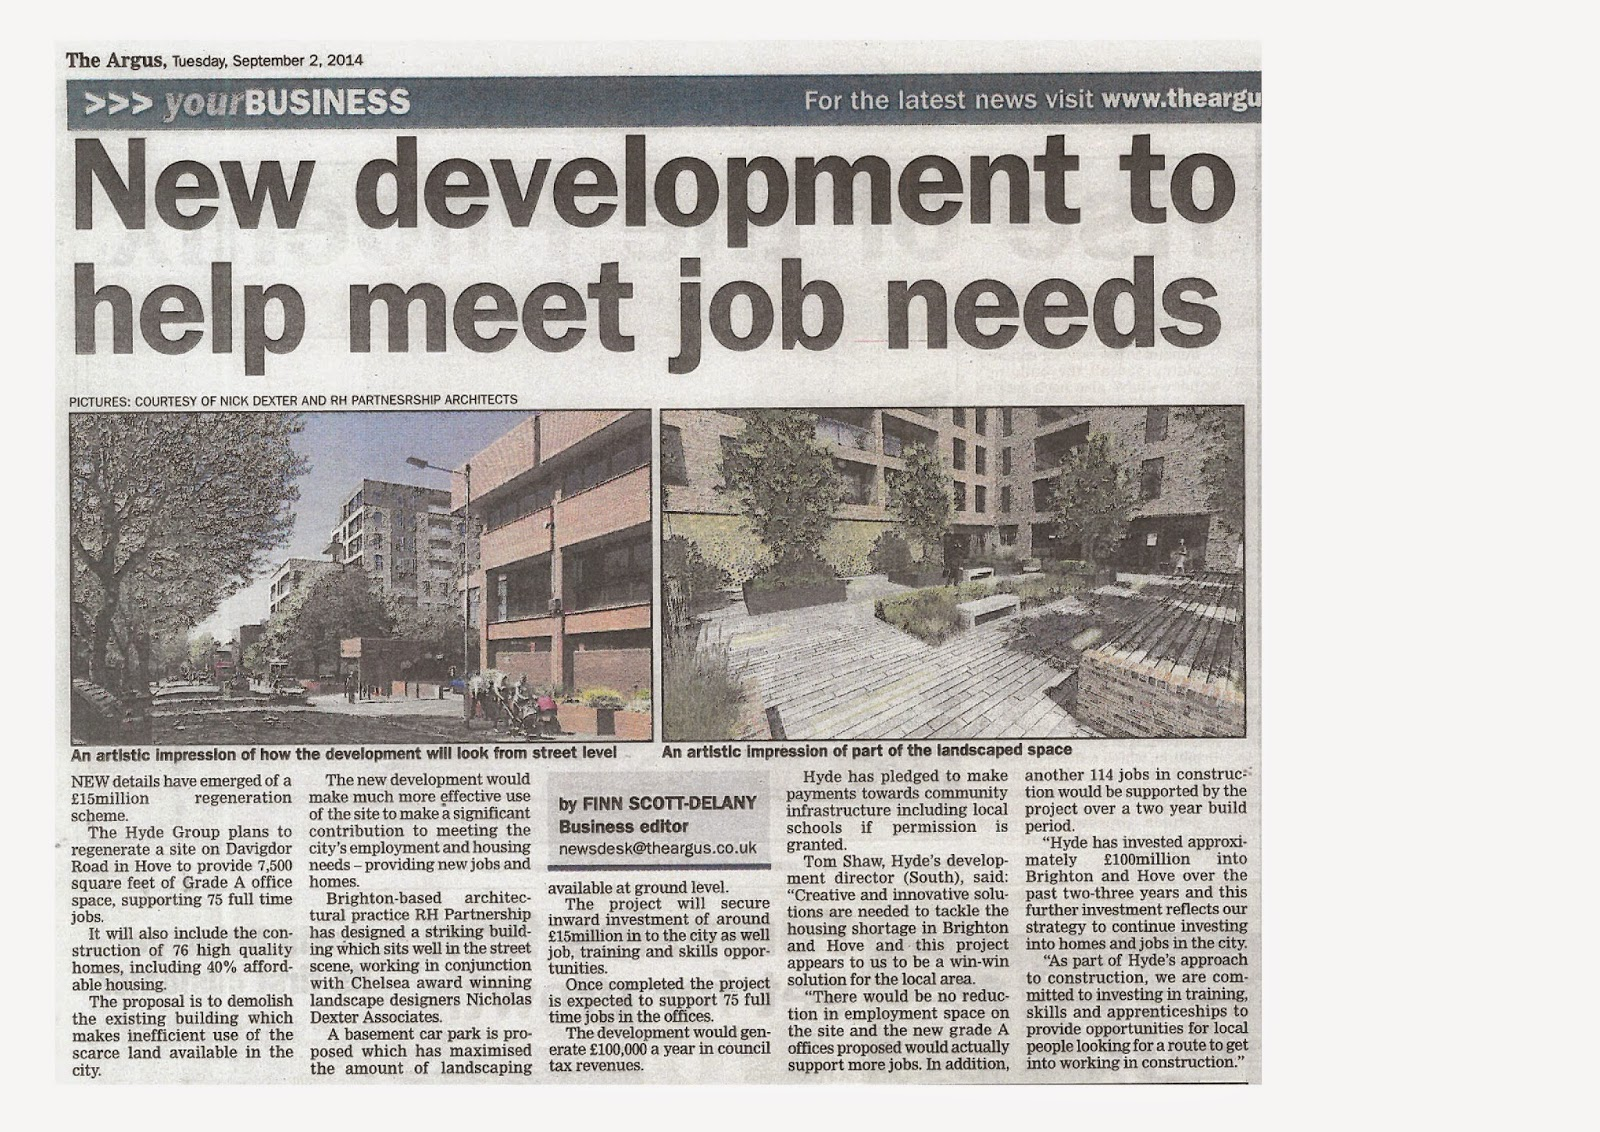 Hyde Group proposals help meet job needs